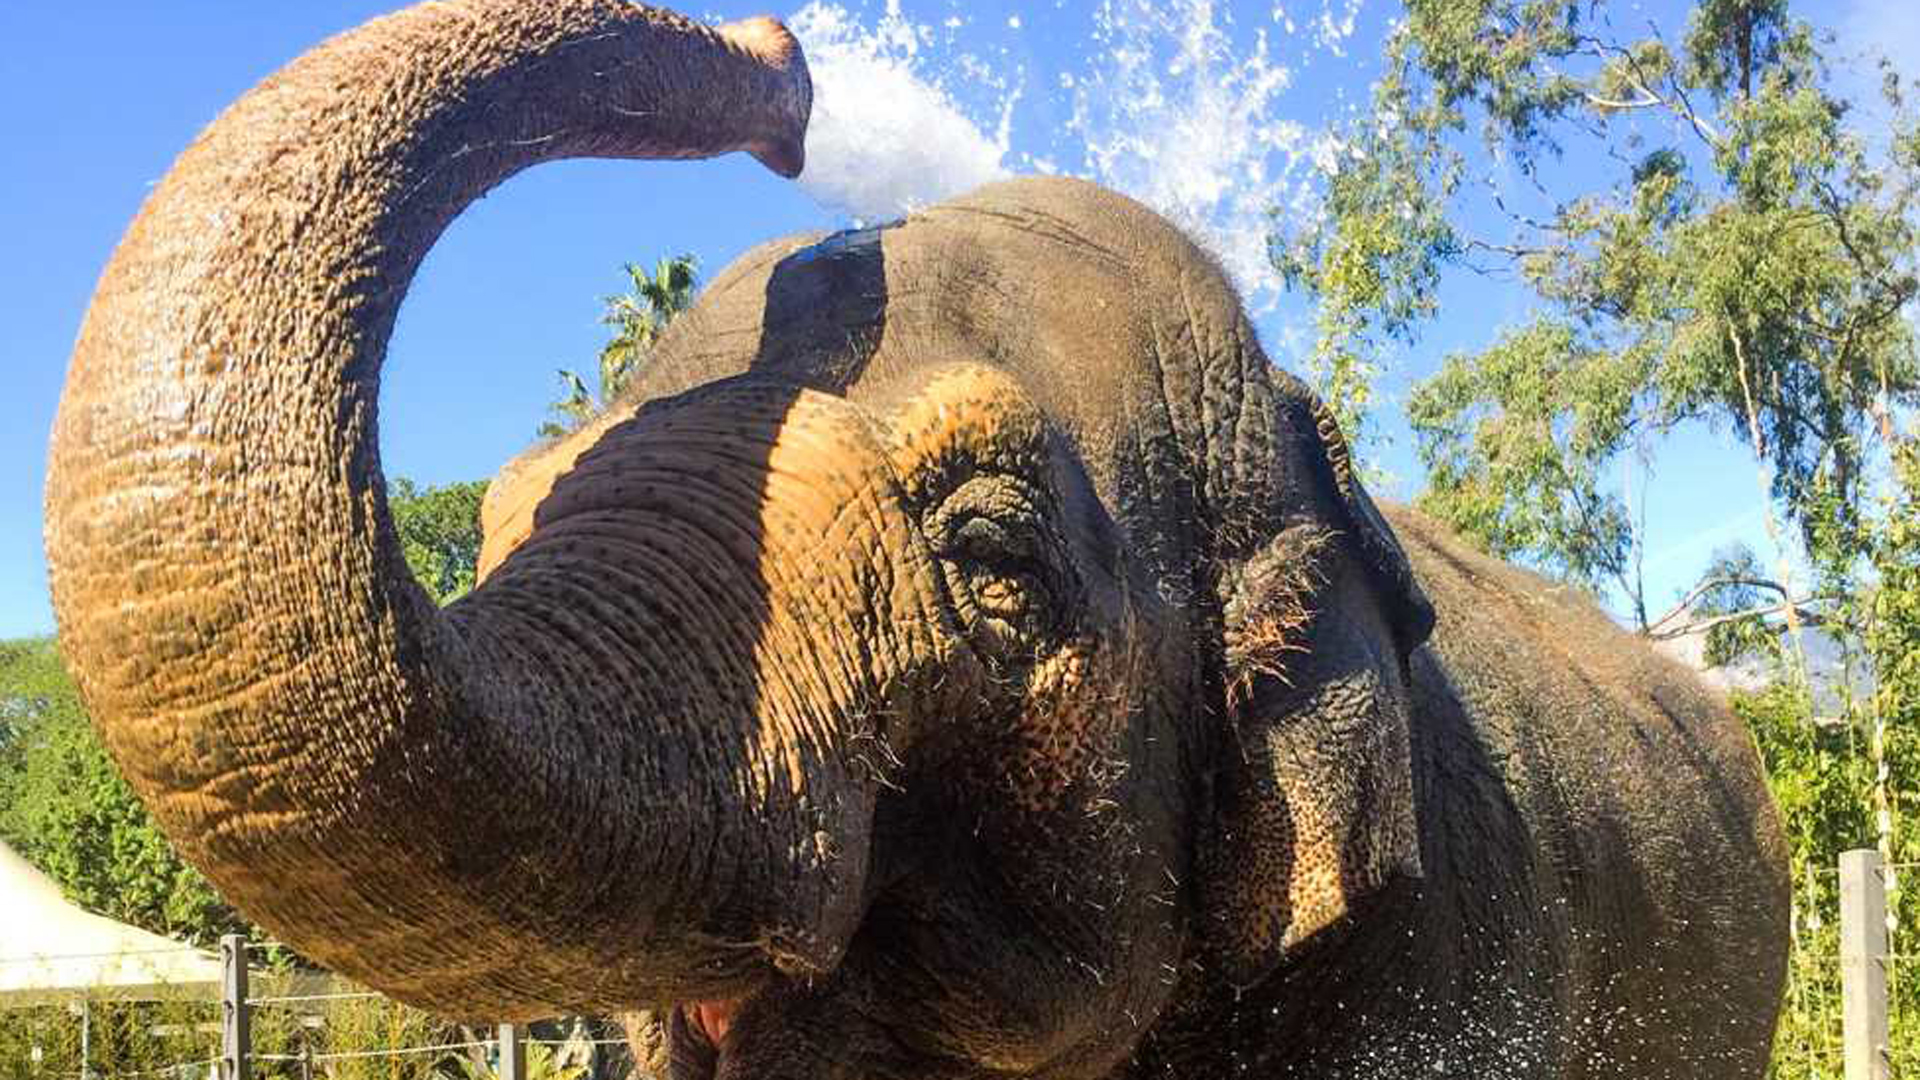 Sujatha, a 47-year-old Asian elephant at the Santa Barbara zoo who had to be euthanized, is seen in a photo posted to the facility's website on Oct. 17, 2018.